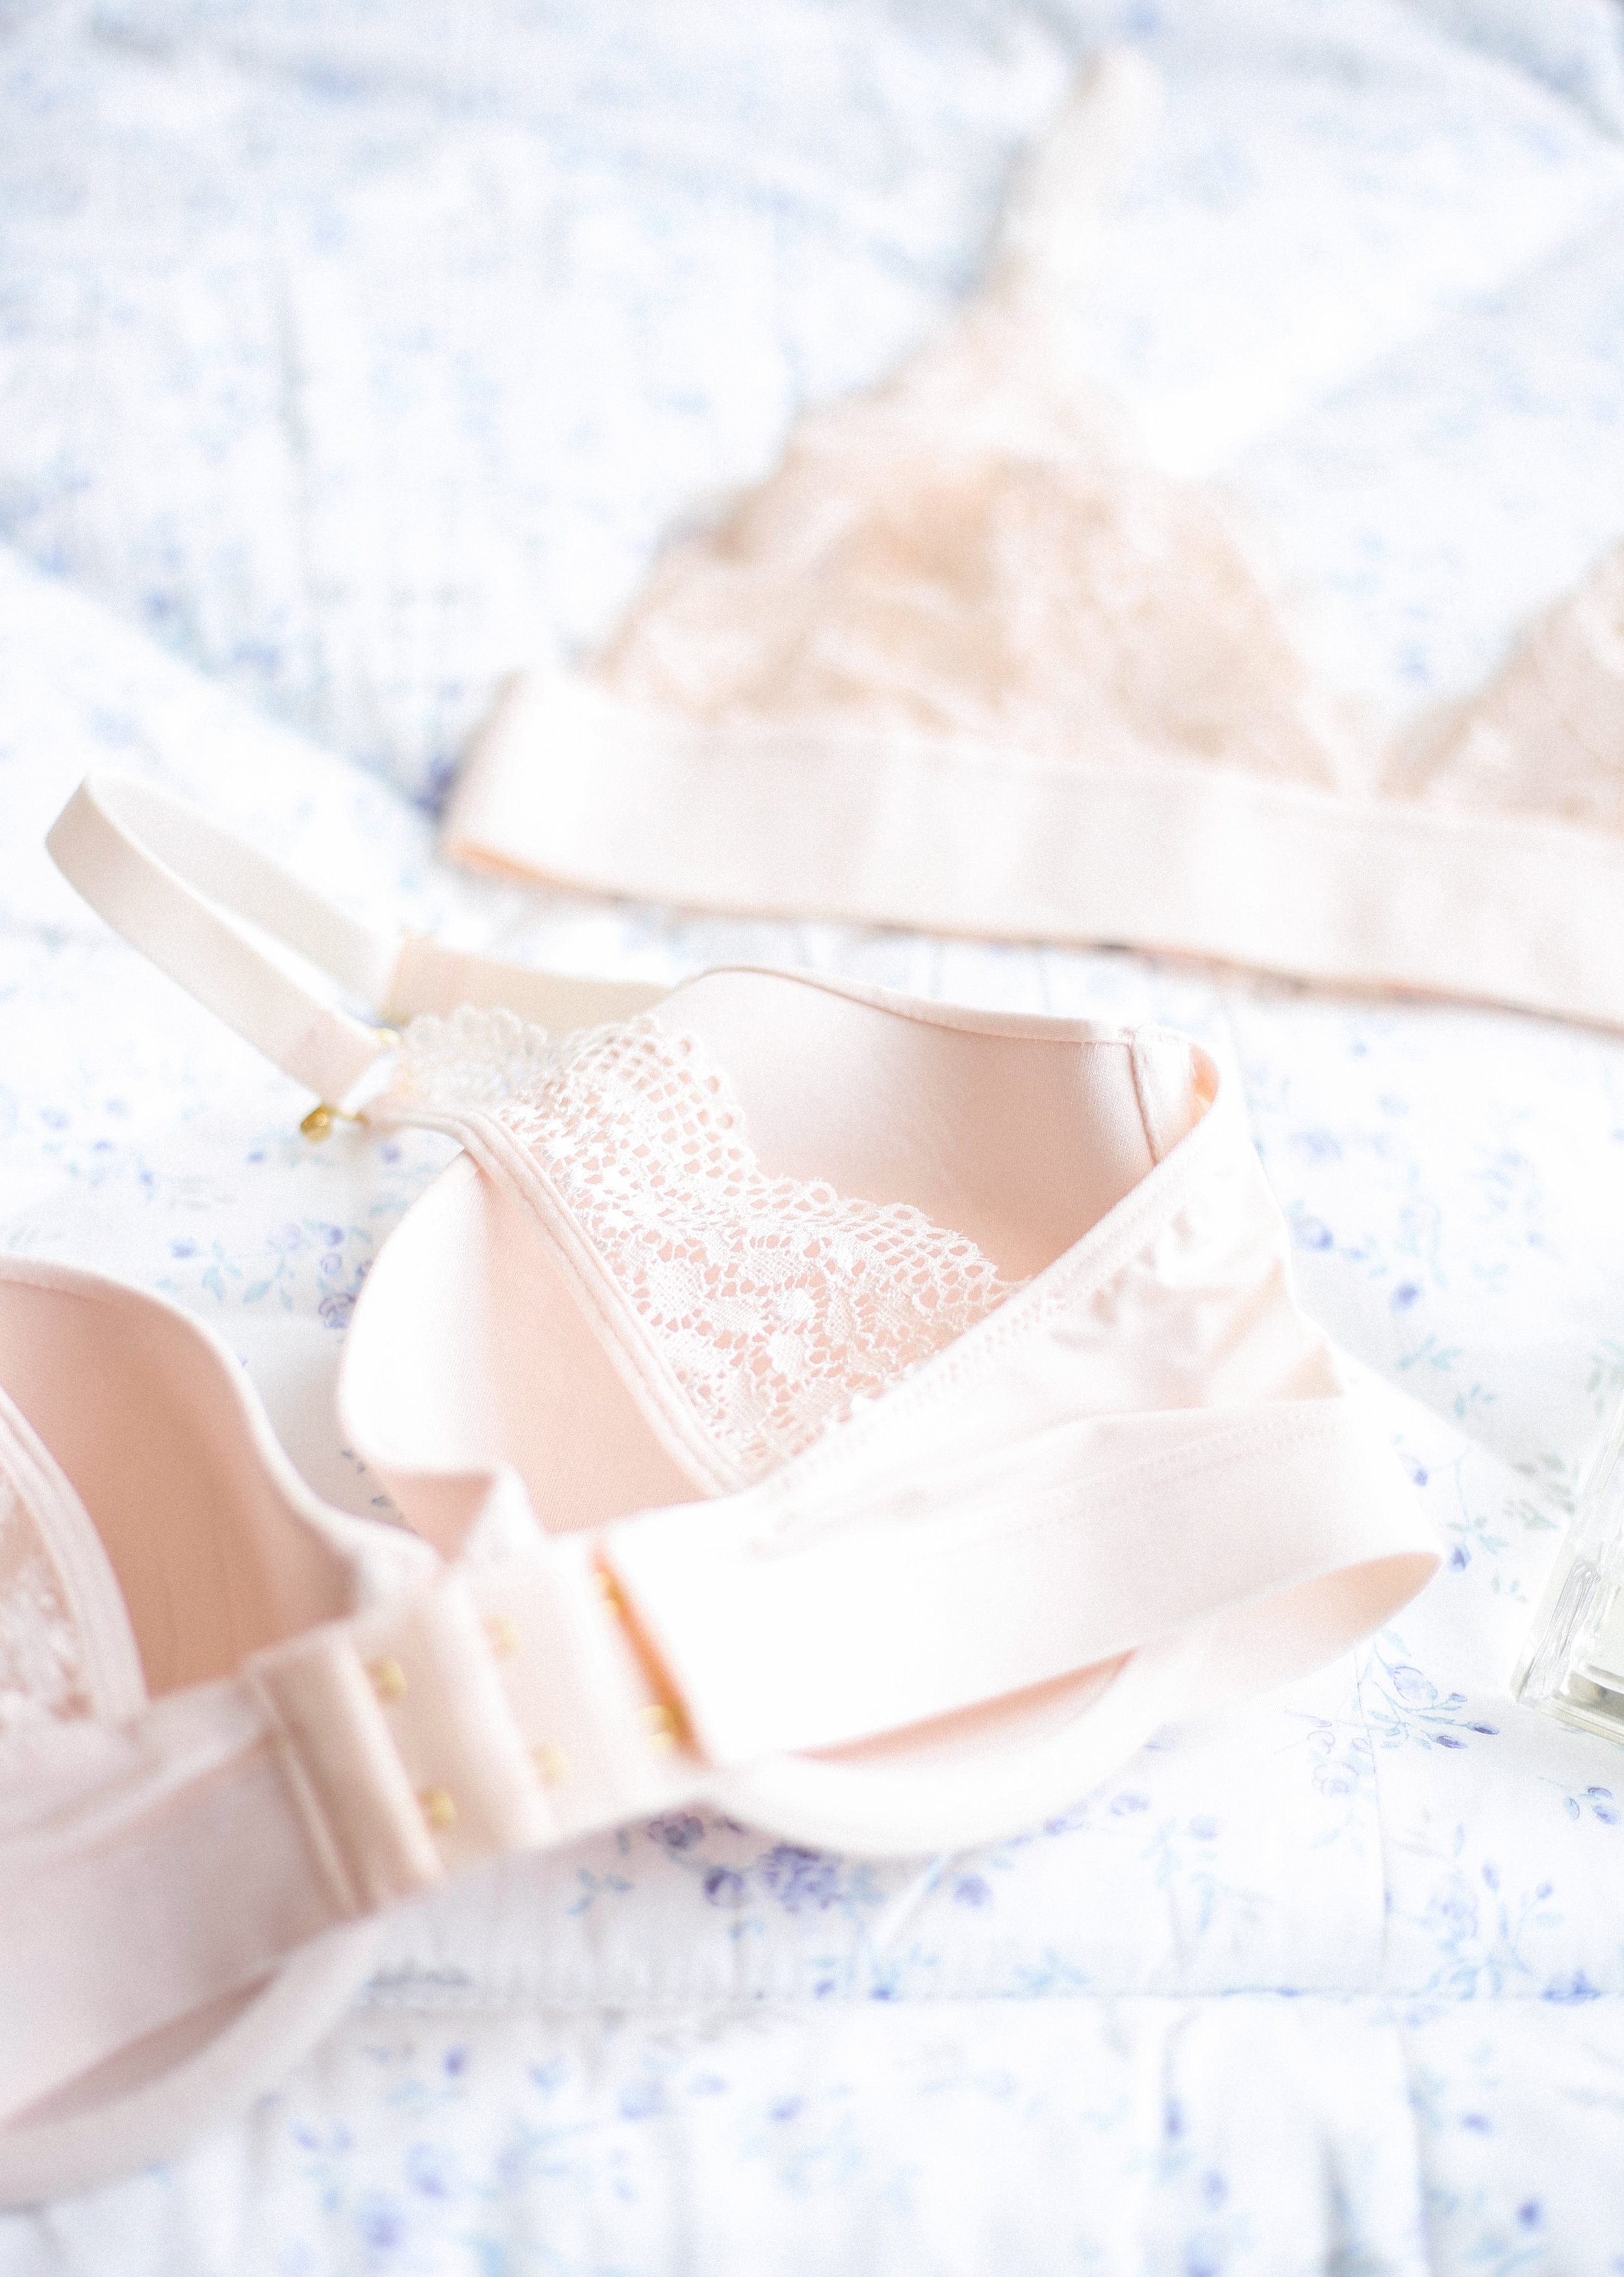 Soft, Pretty, and Budget-Friendly Bras   On the Street Where We Live (aretherelilactrees.com)  Lively, wearlively